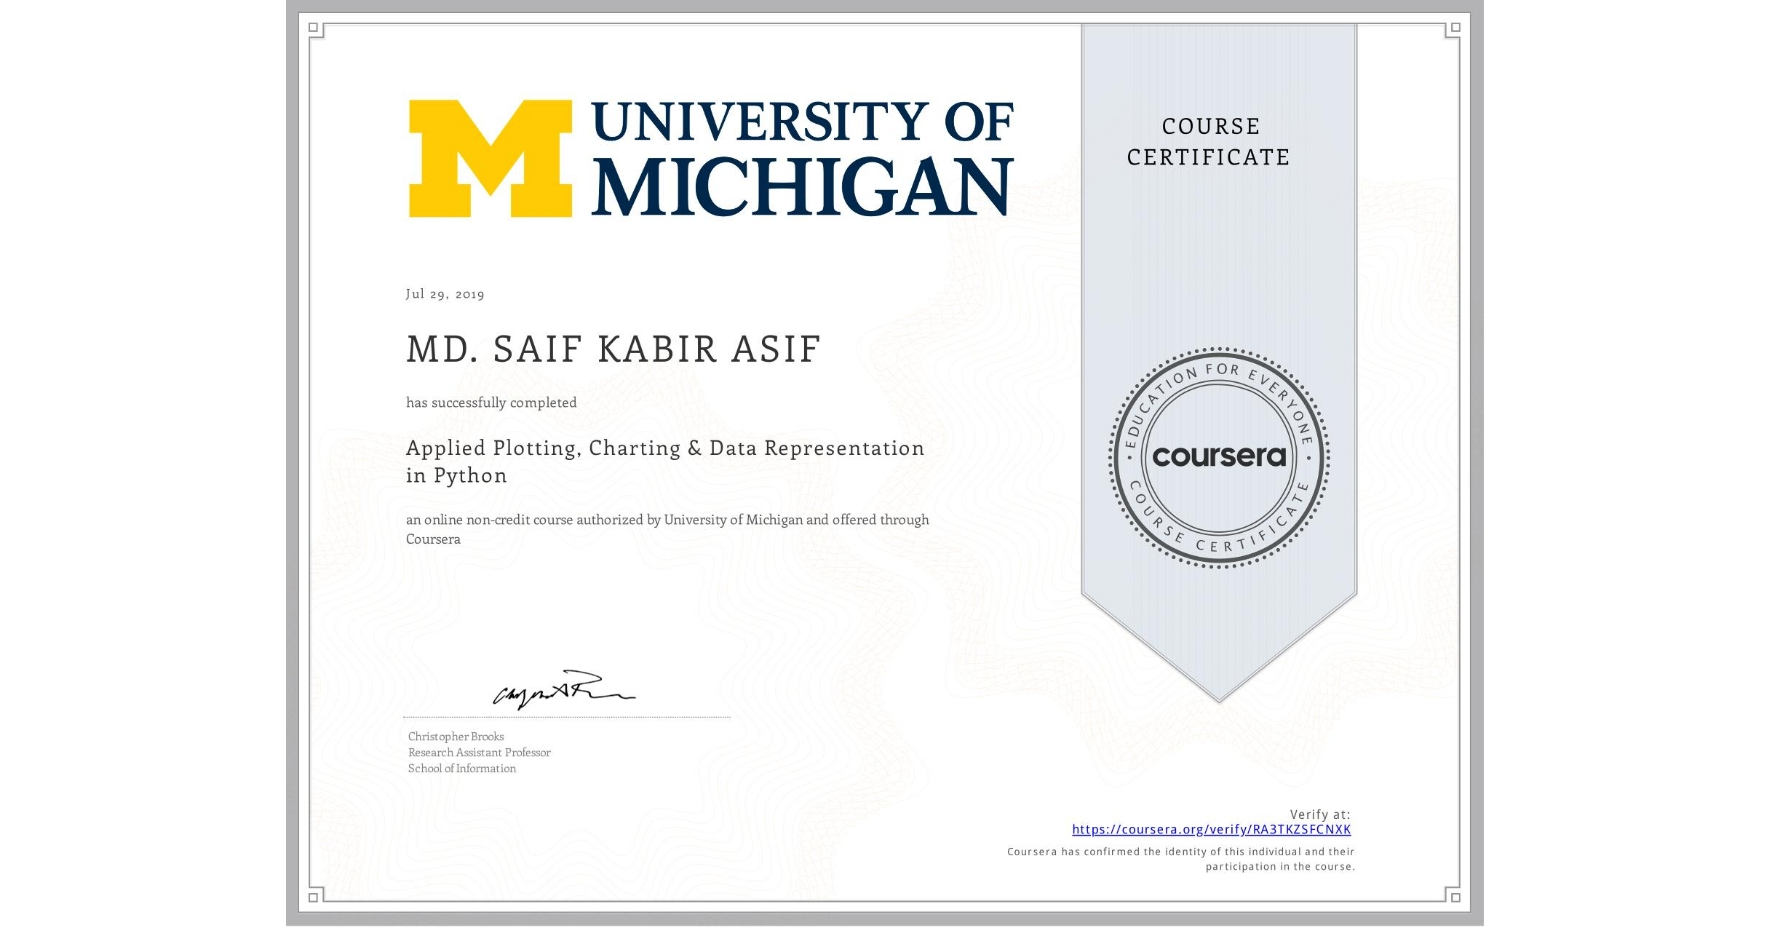 View certificate for Md. Saif Kabir  Asif, Applied Plotting, Charting & Data Representation in Python, an online non-credit course authorized by University of Michigan and offered through Coursera